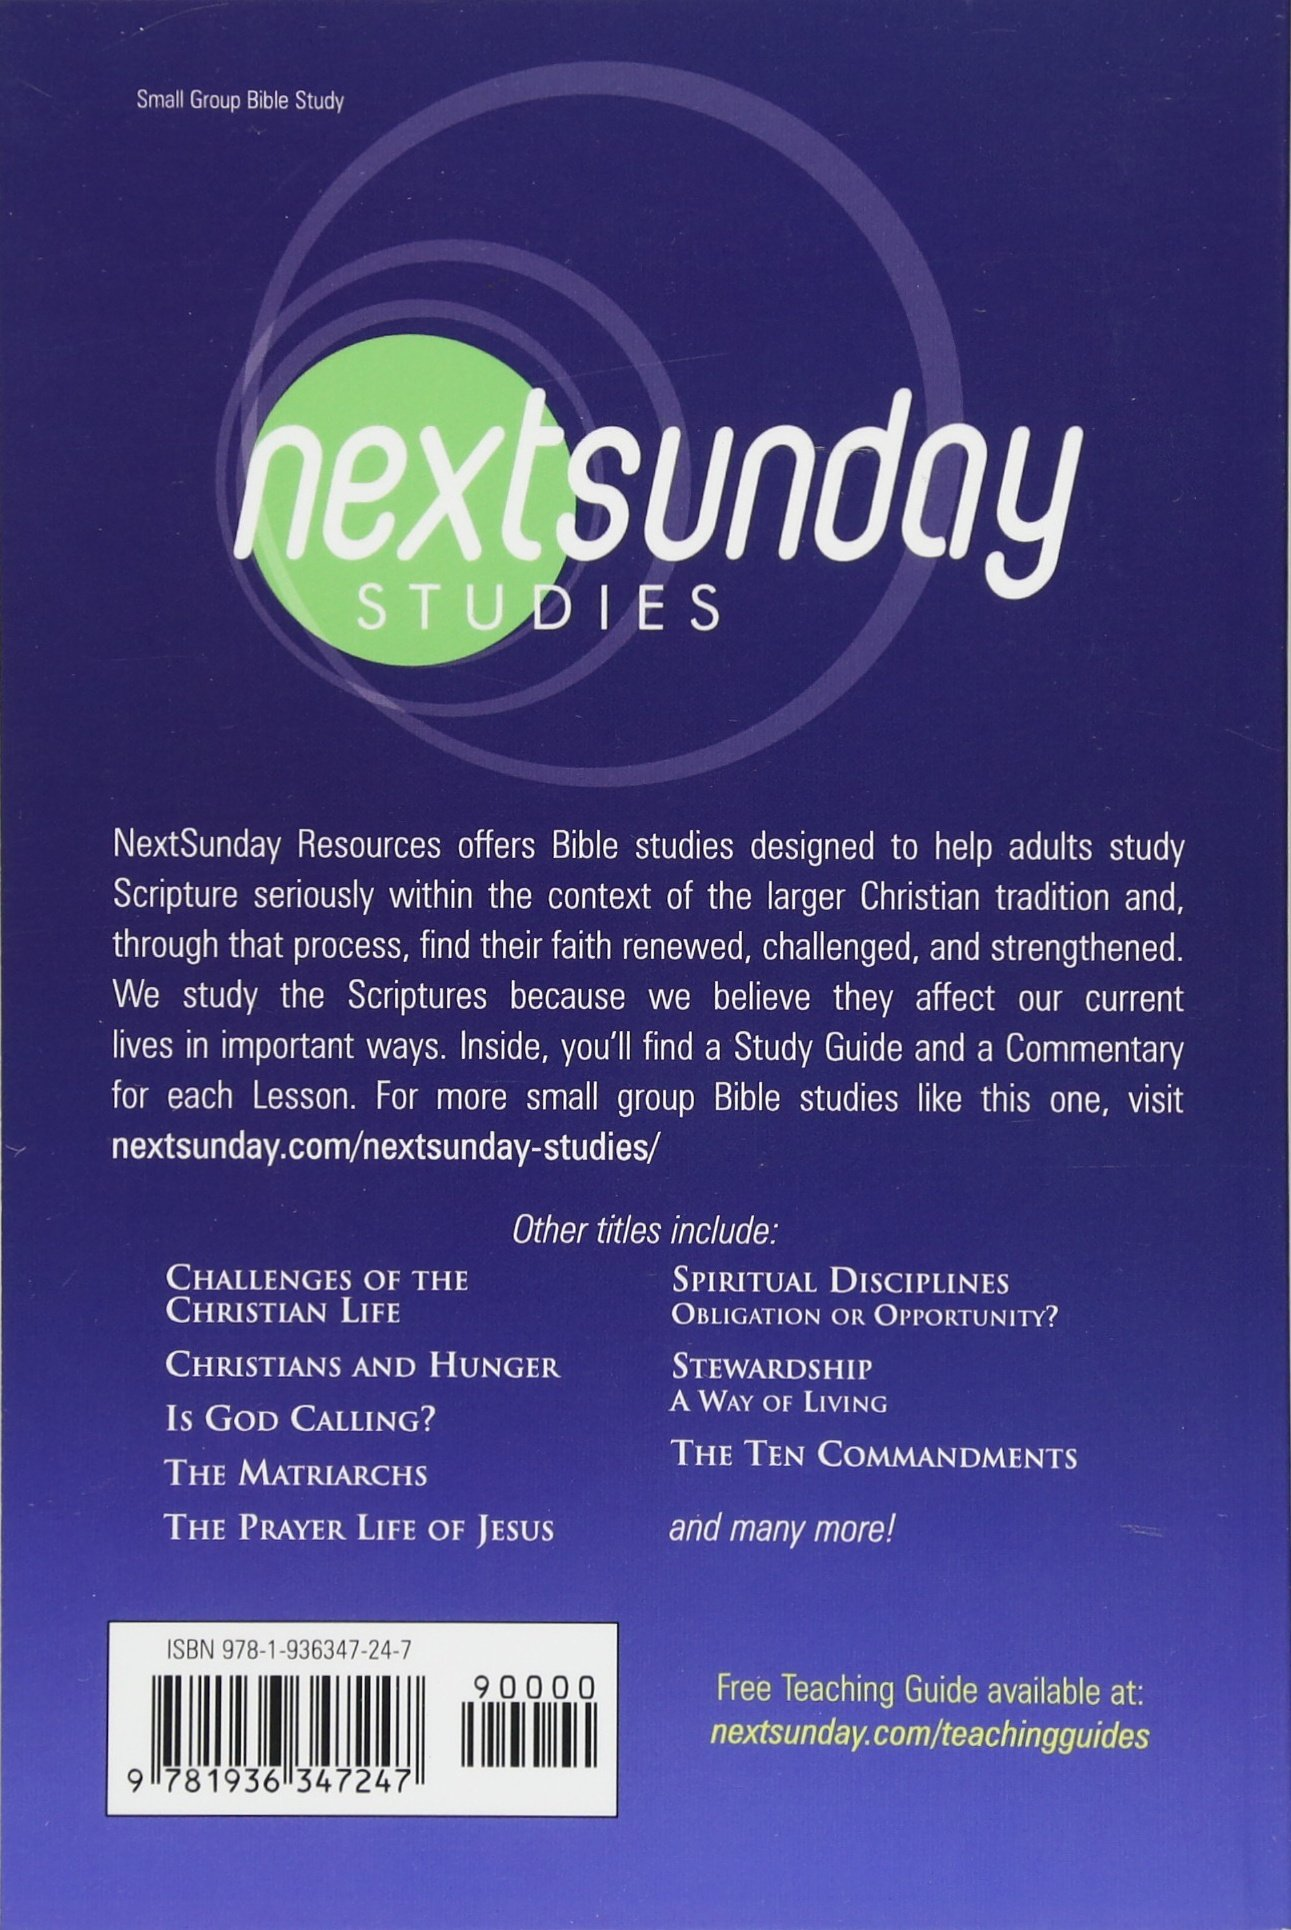 Christians and Hunger (NextSunday Studies)